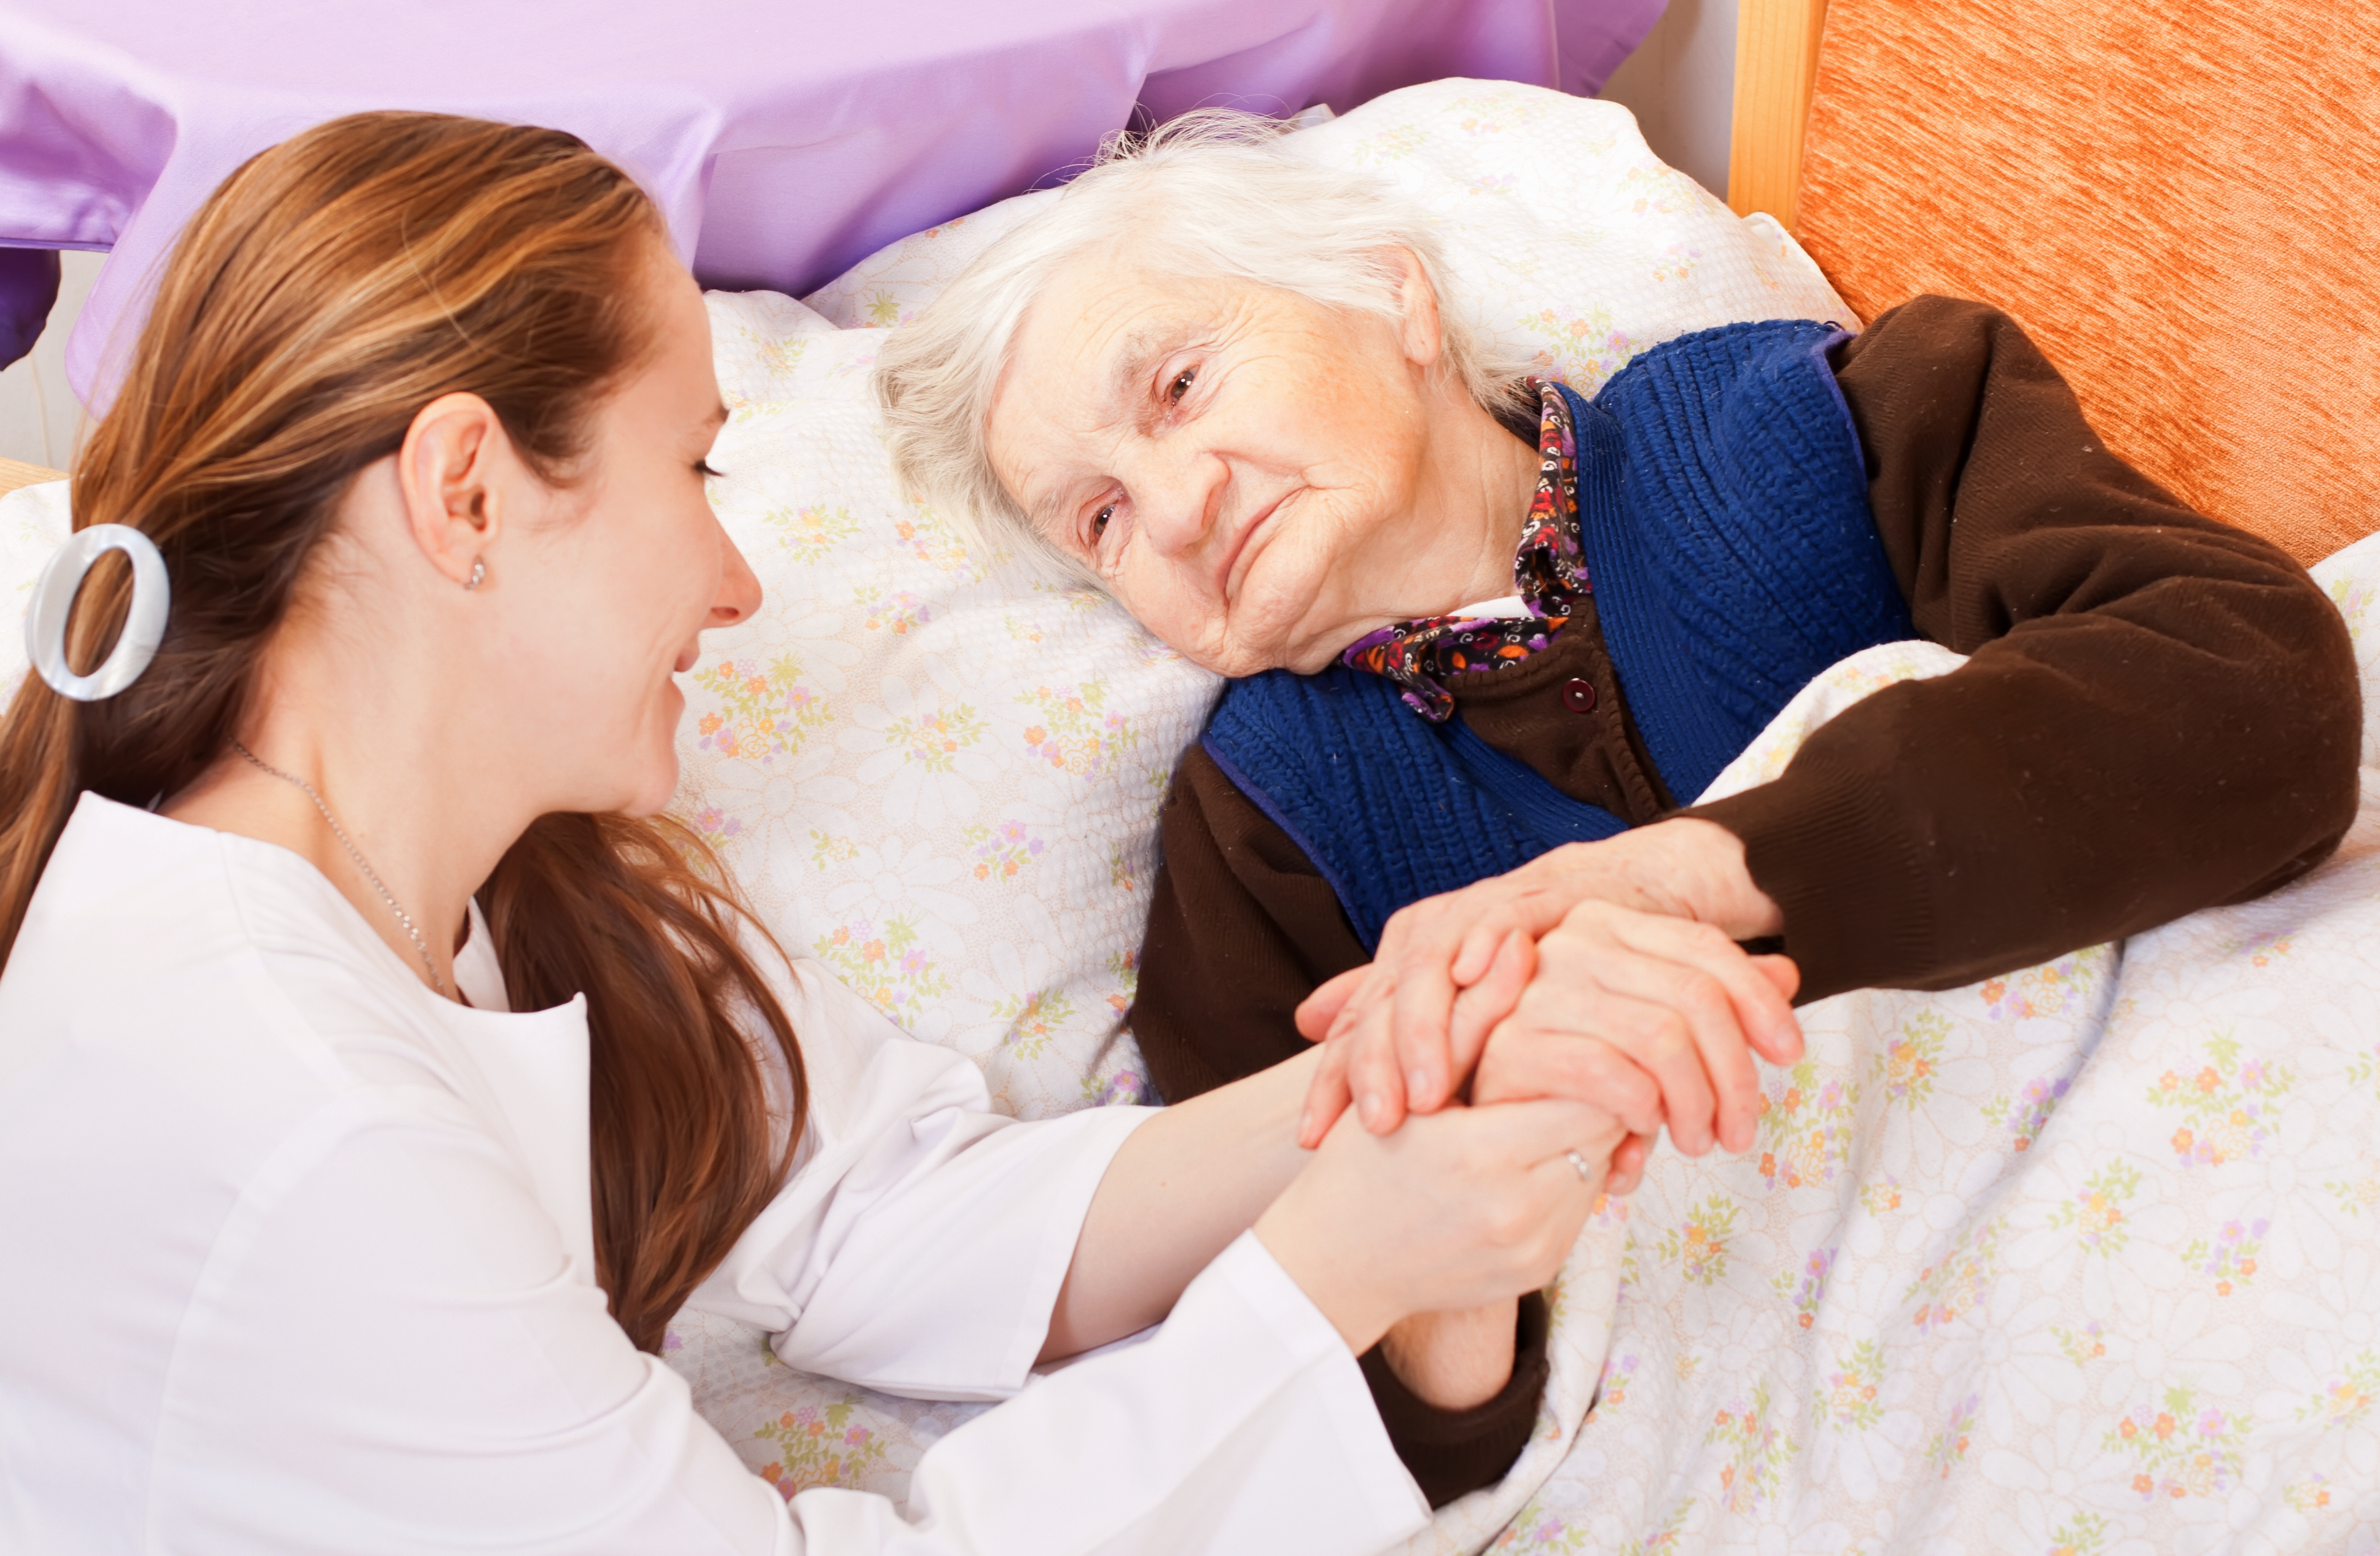 image of woman sitting next to bed with elderly sick woman, they are smiling and holding hands